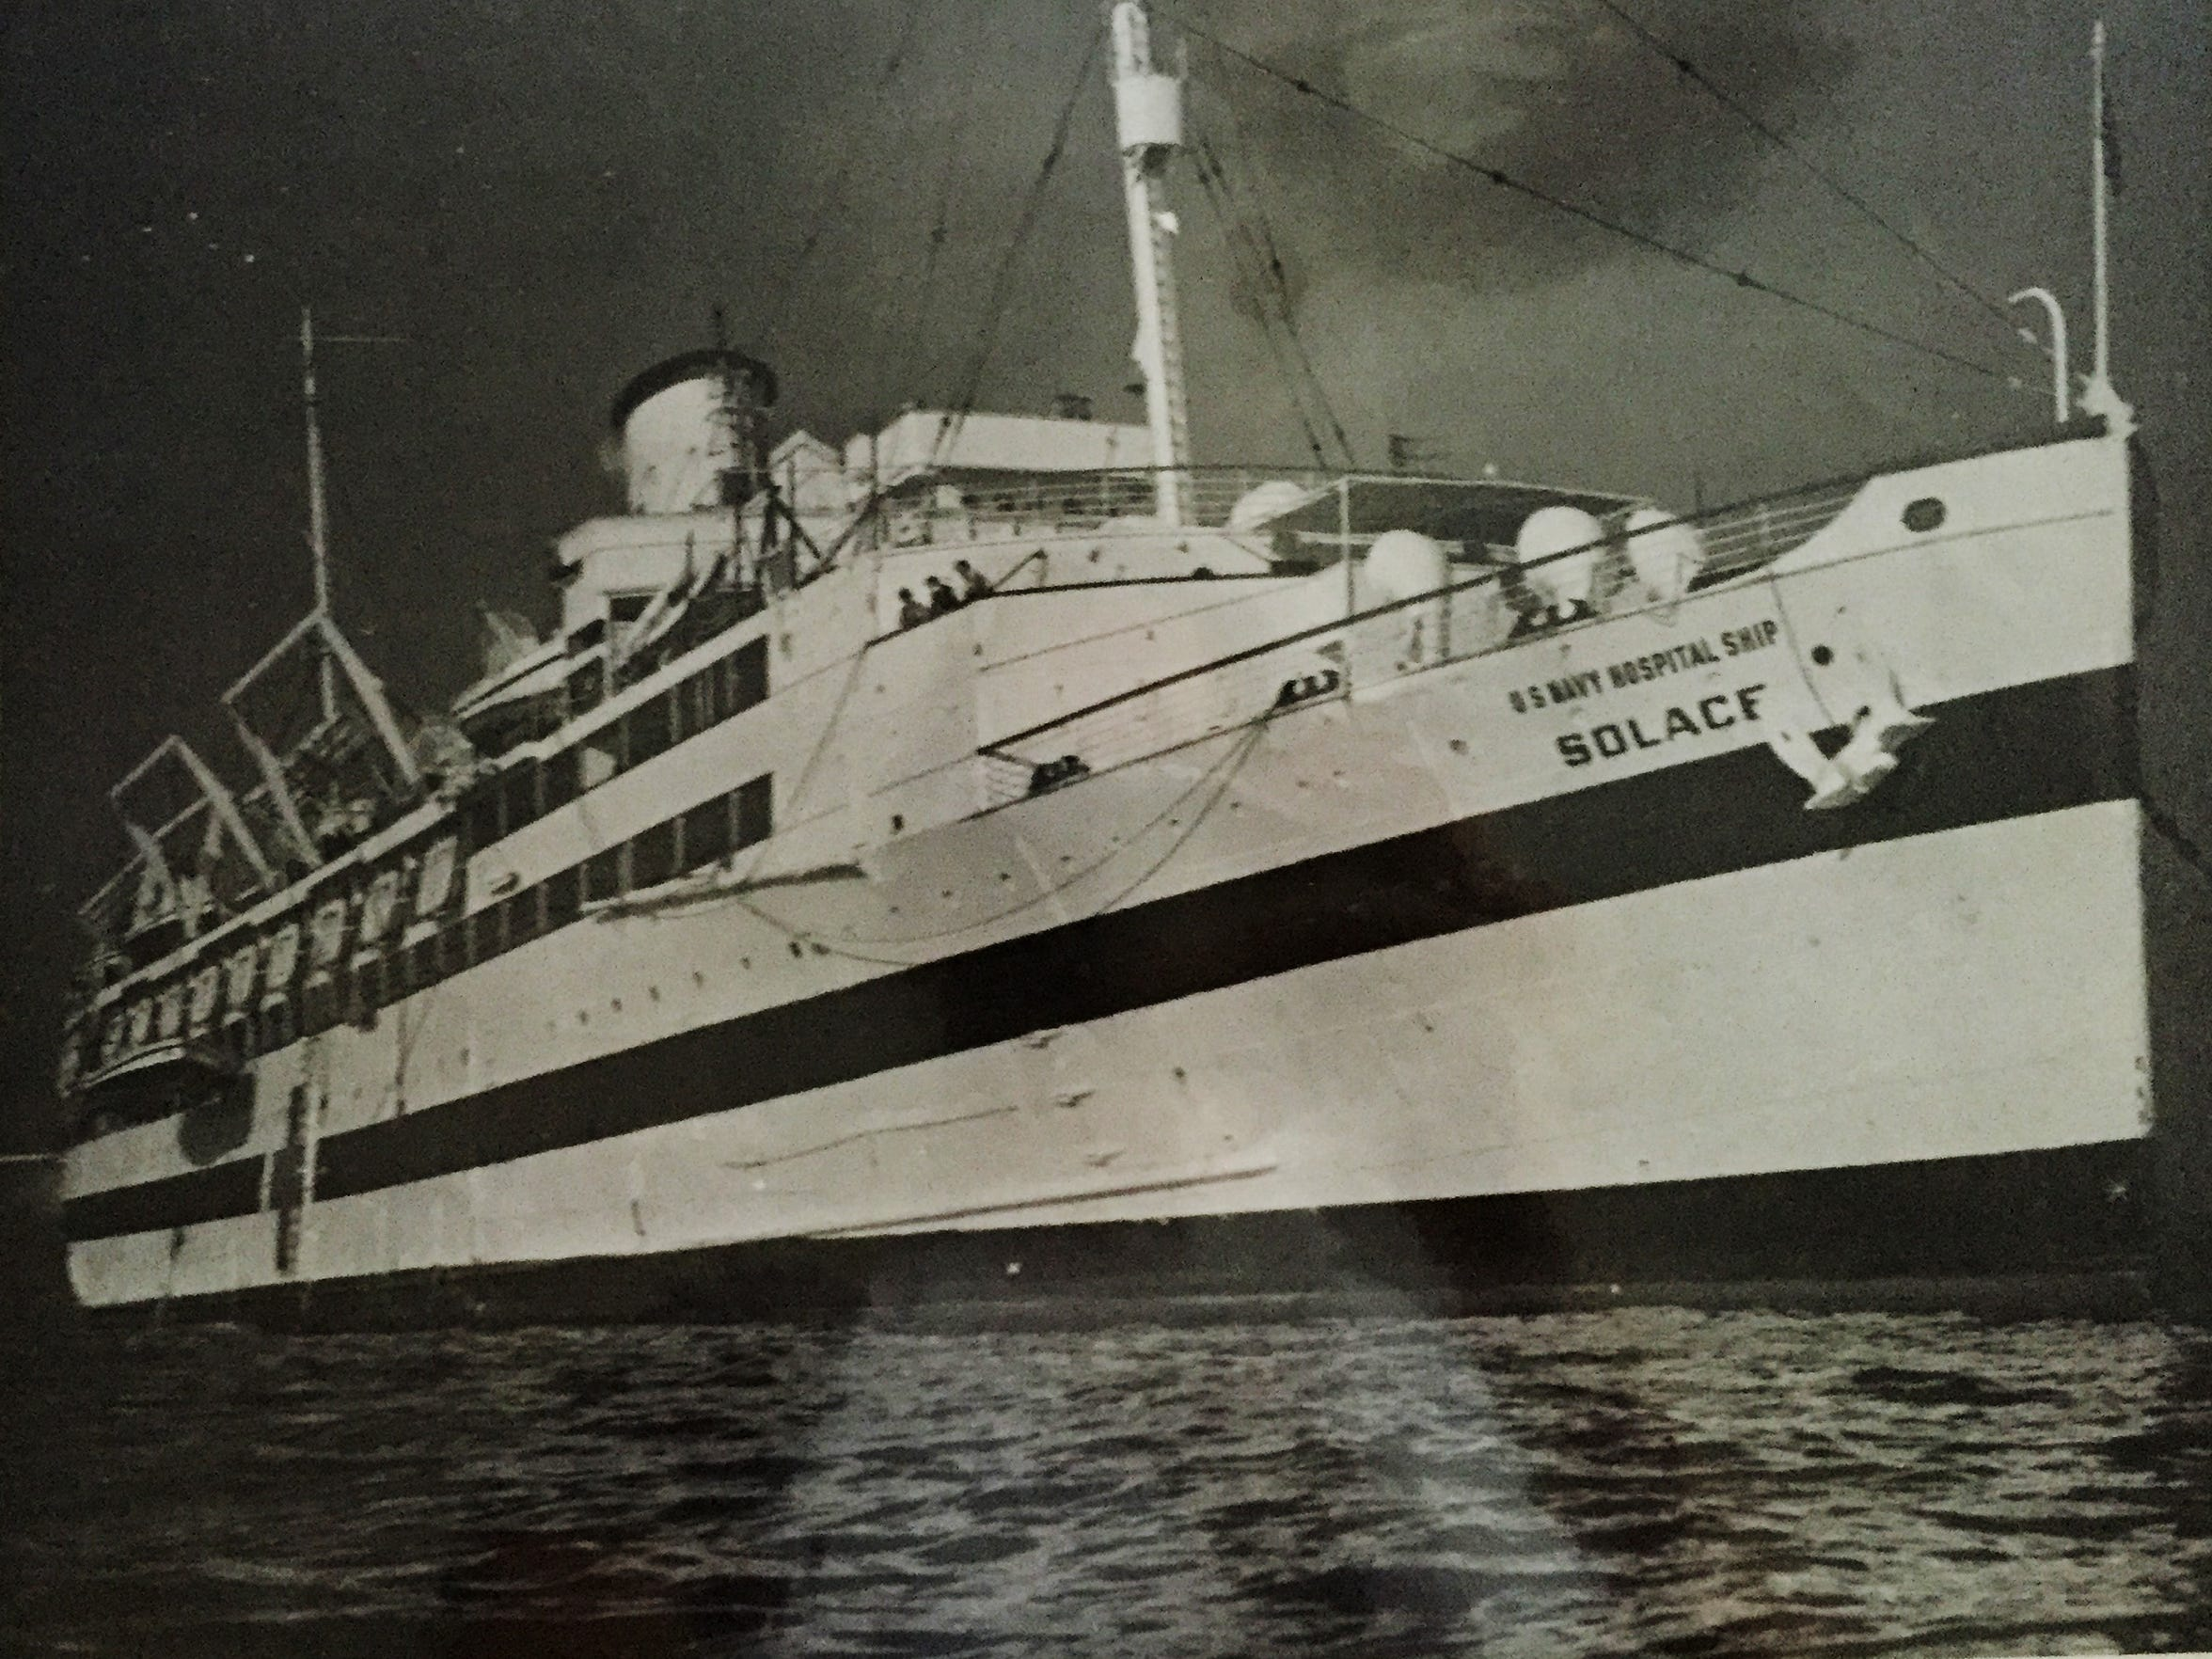 Initially, the lighted hospital ship would sail out